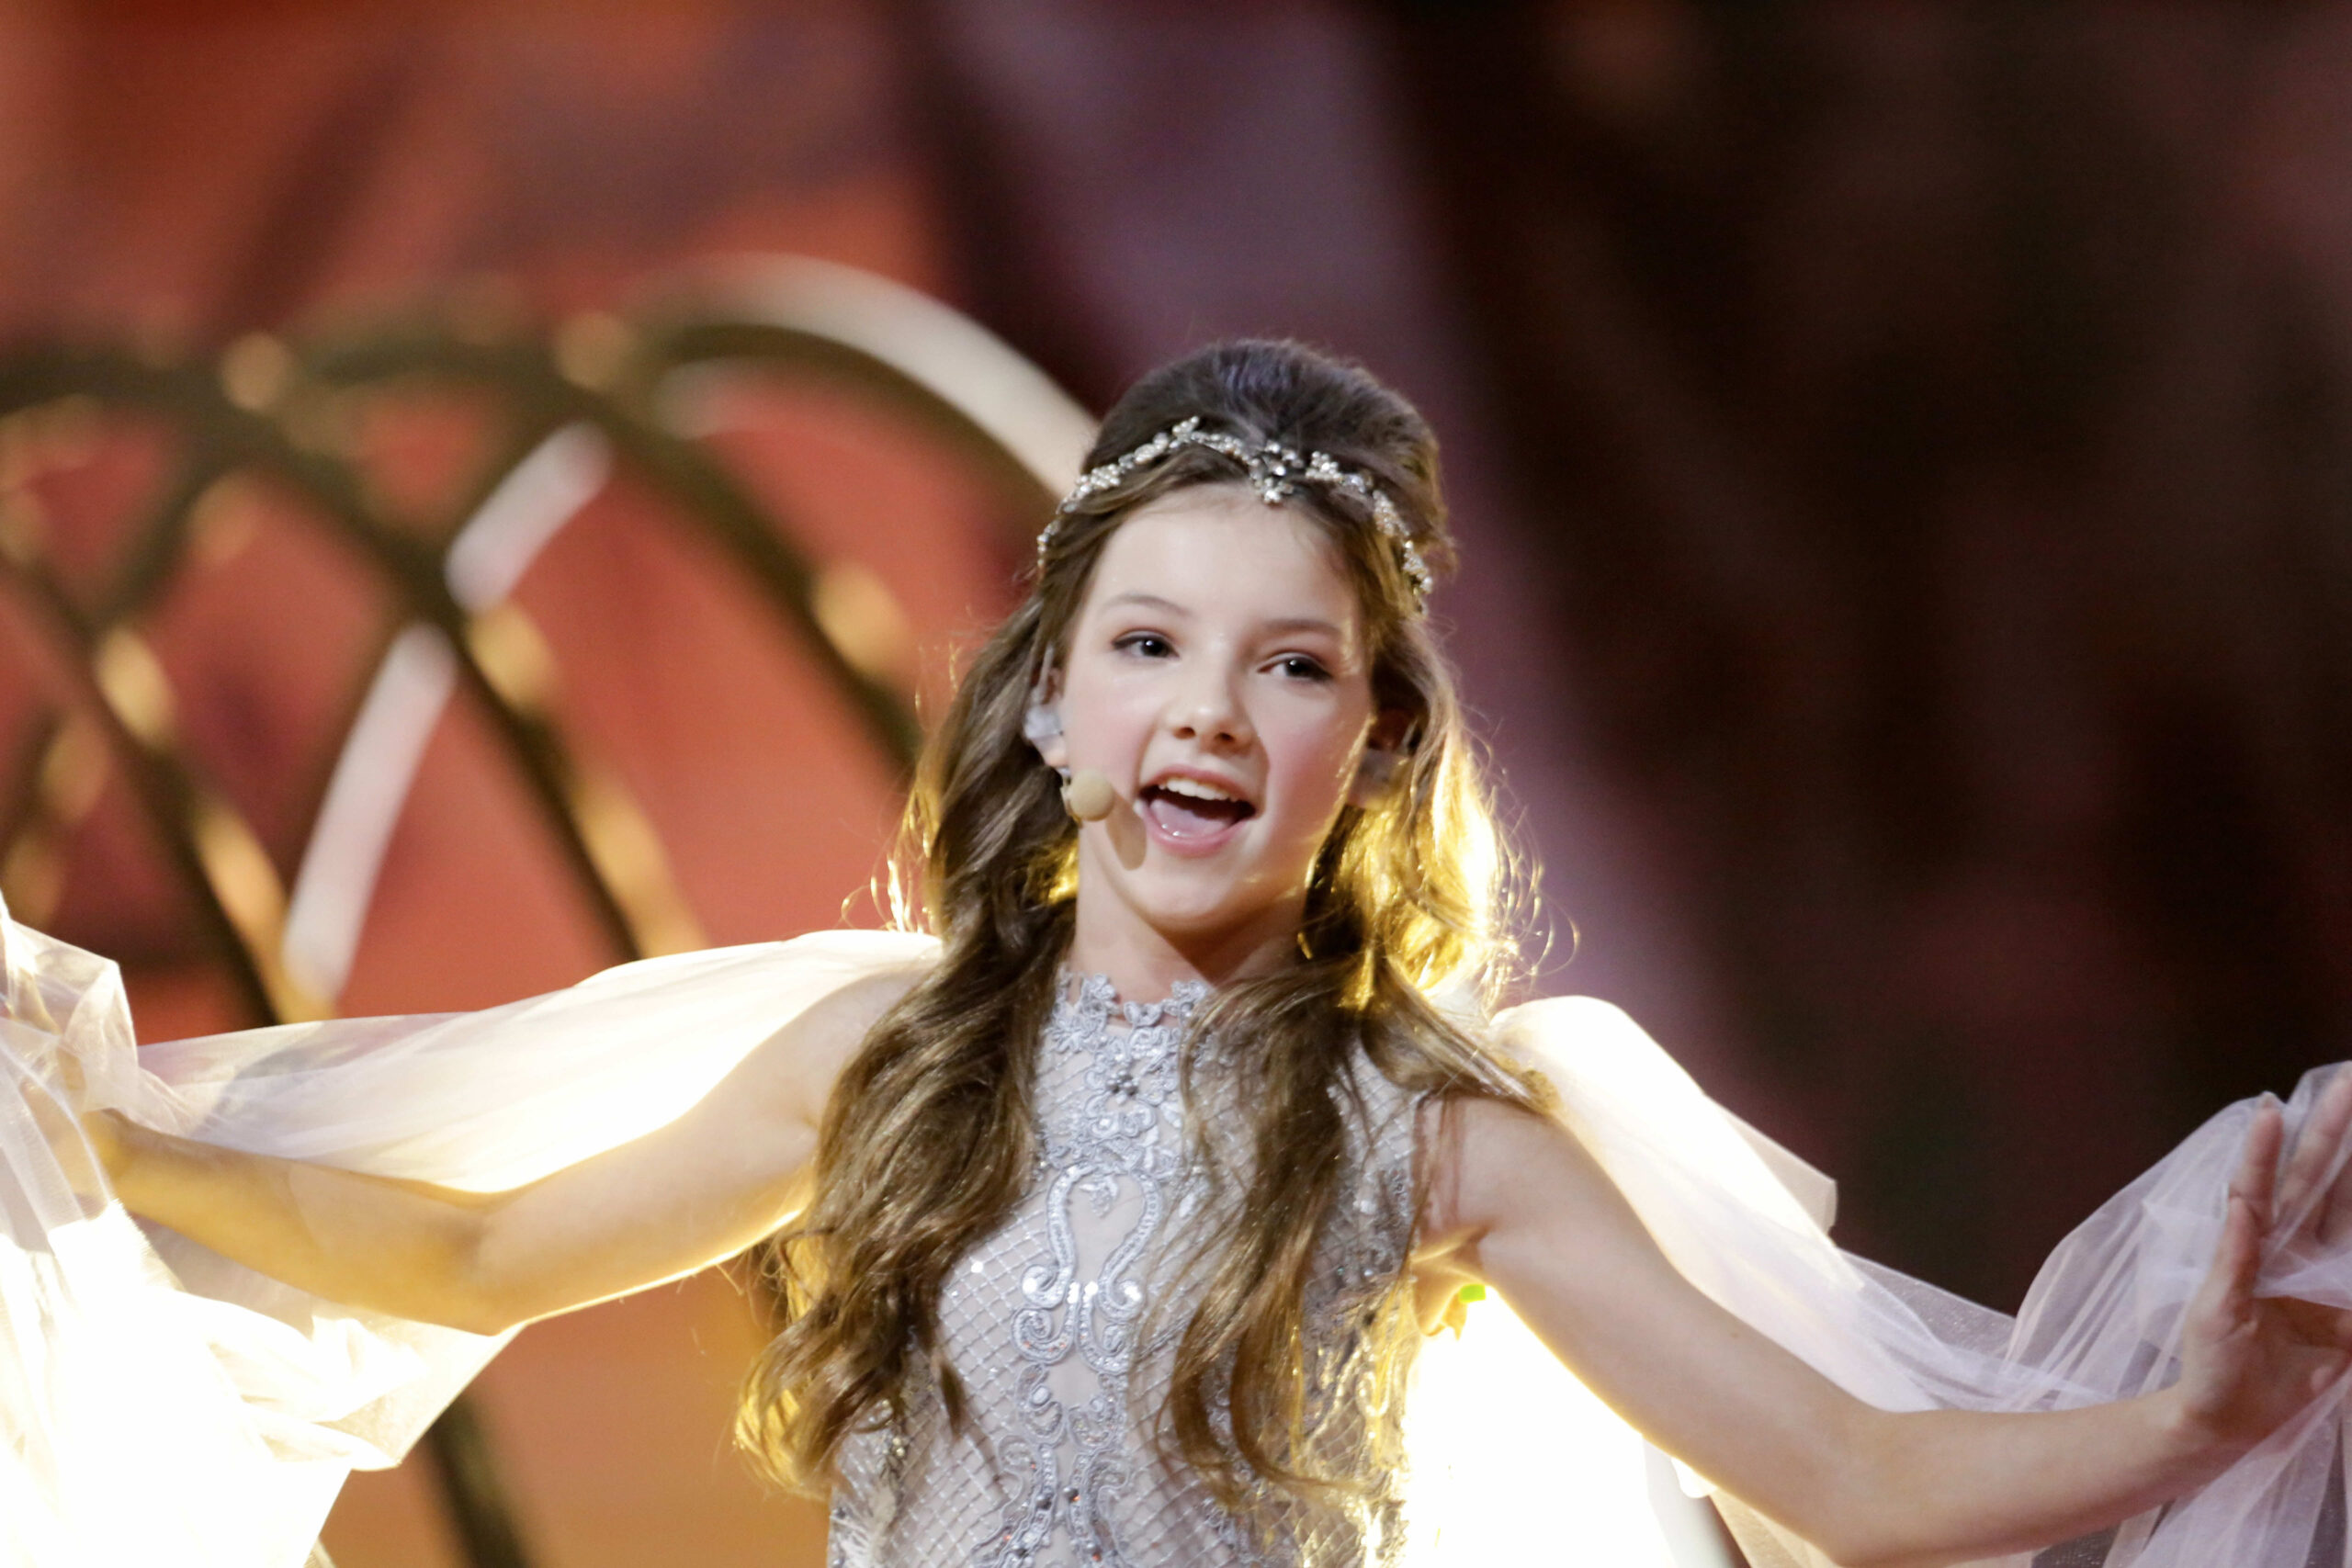 Junior Eurovision is back! Applications are now open for 2021